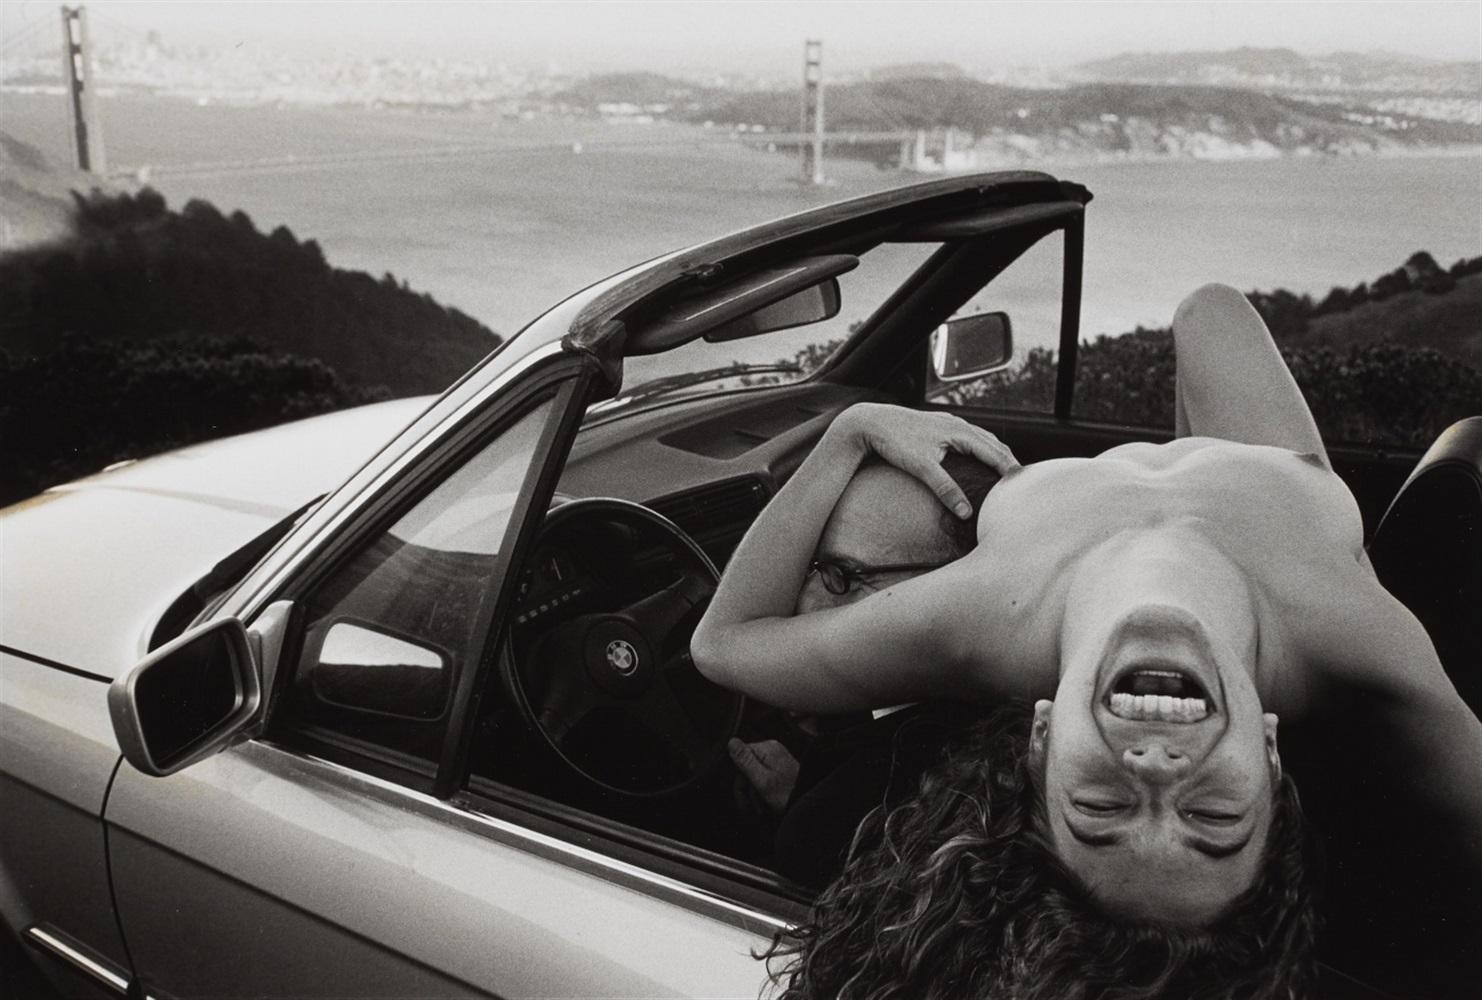 Kate in a Car, USA by Leonard Freed